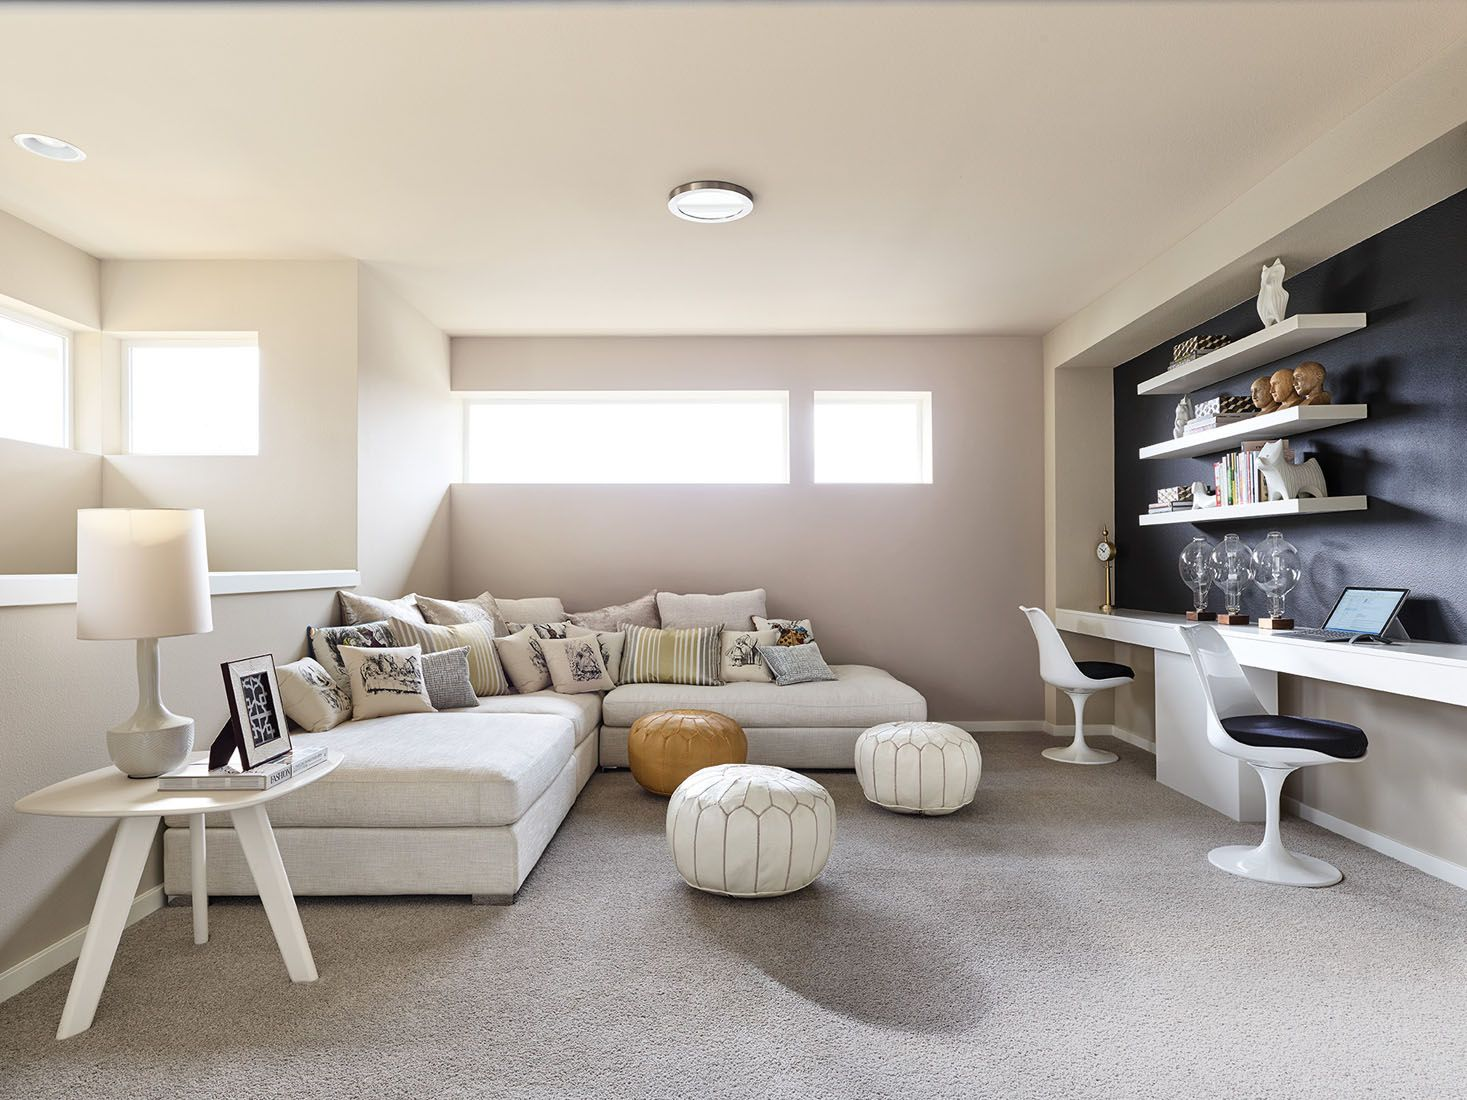 Perfectly Placed Leisure Room Set Up For A Perfect Study Place Inside Home New Home Designs Home